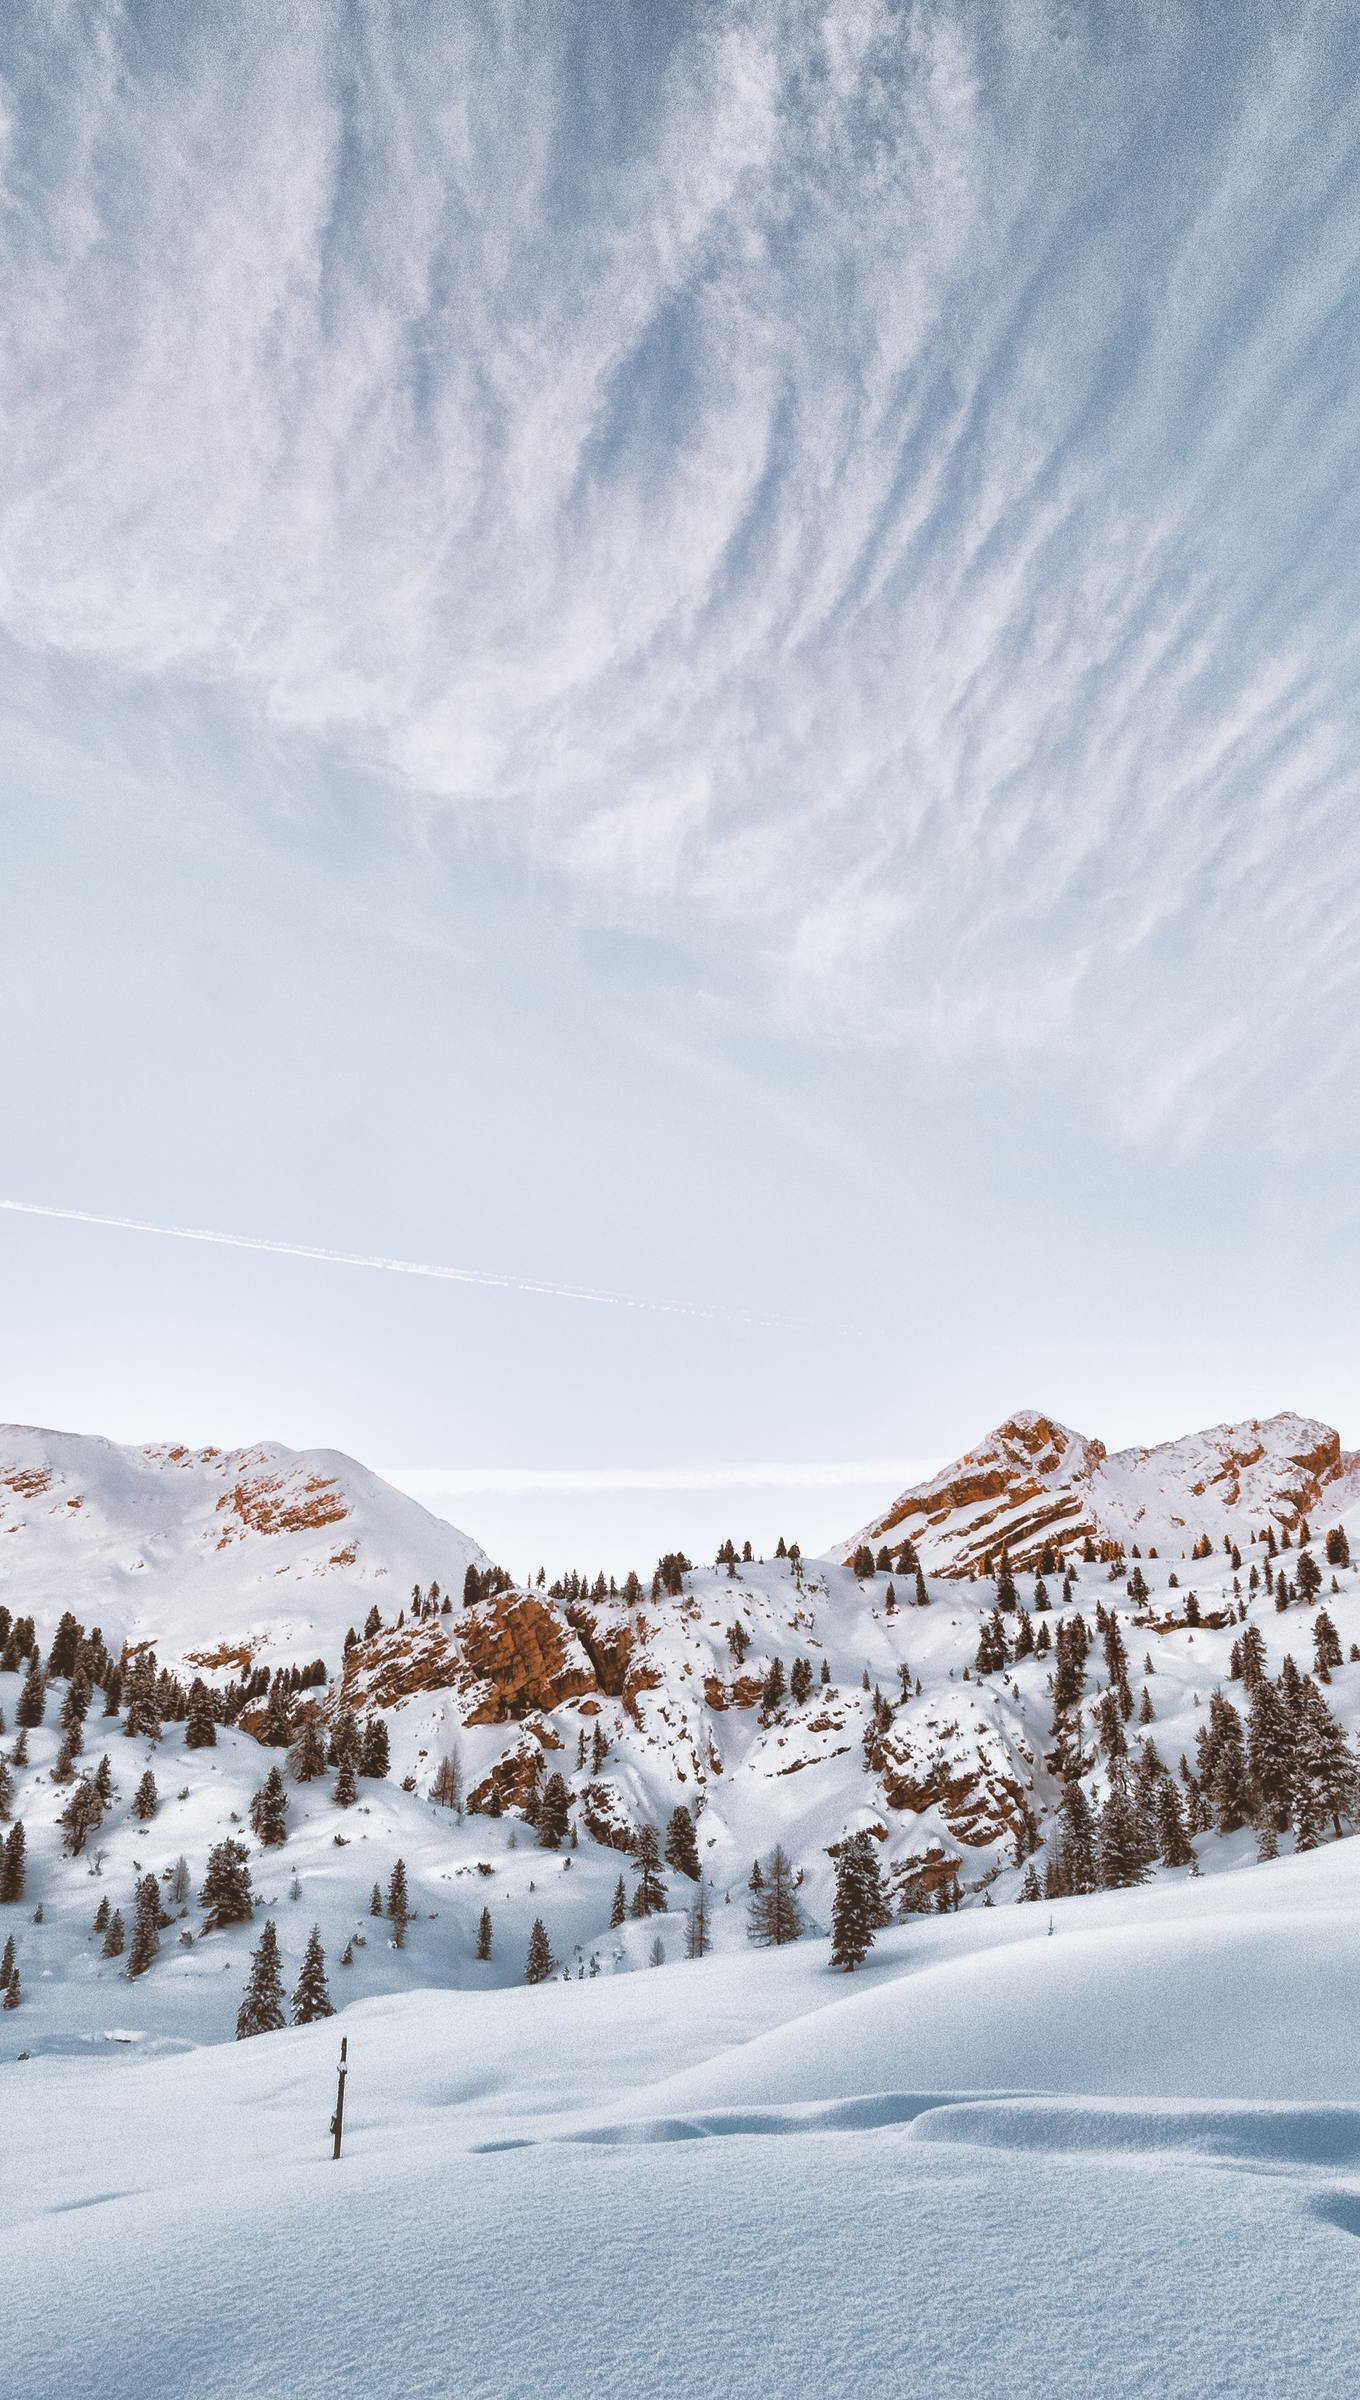 Wallpaper Mountains covered in snow Vertical